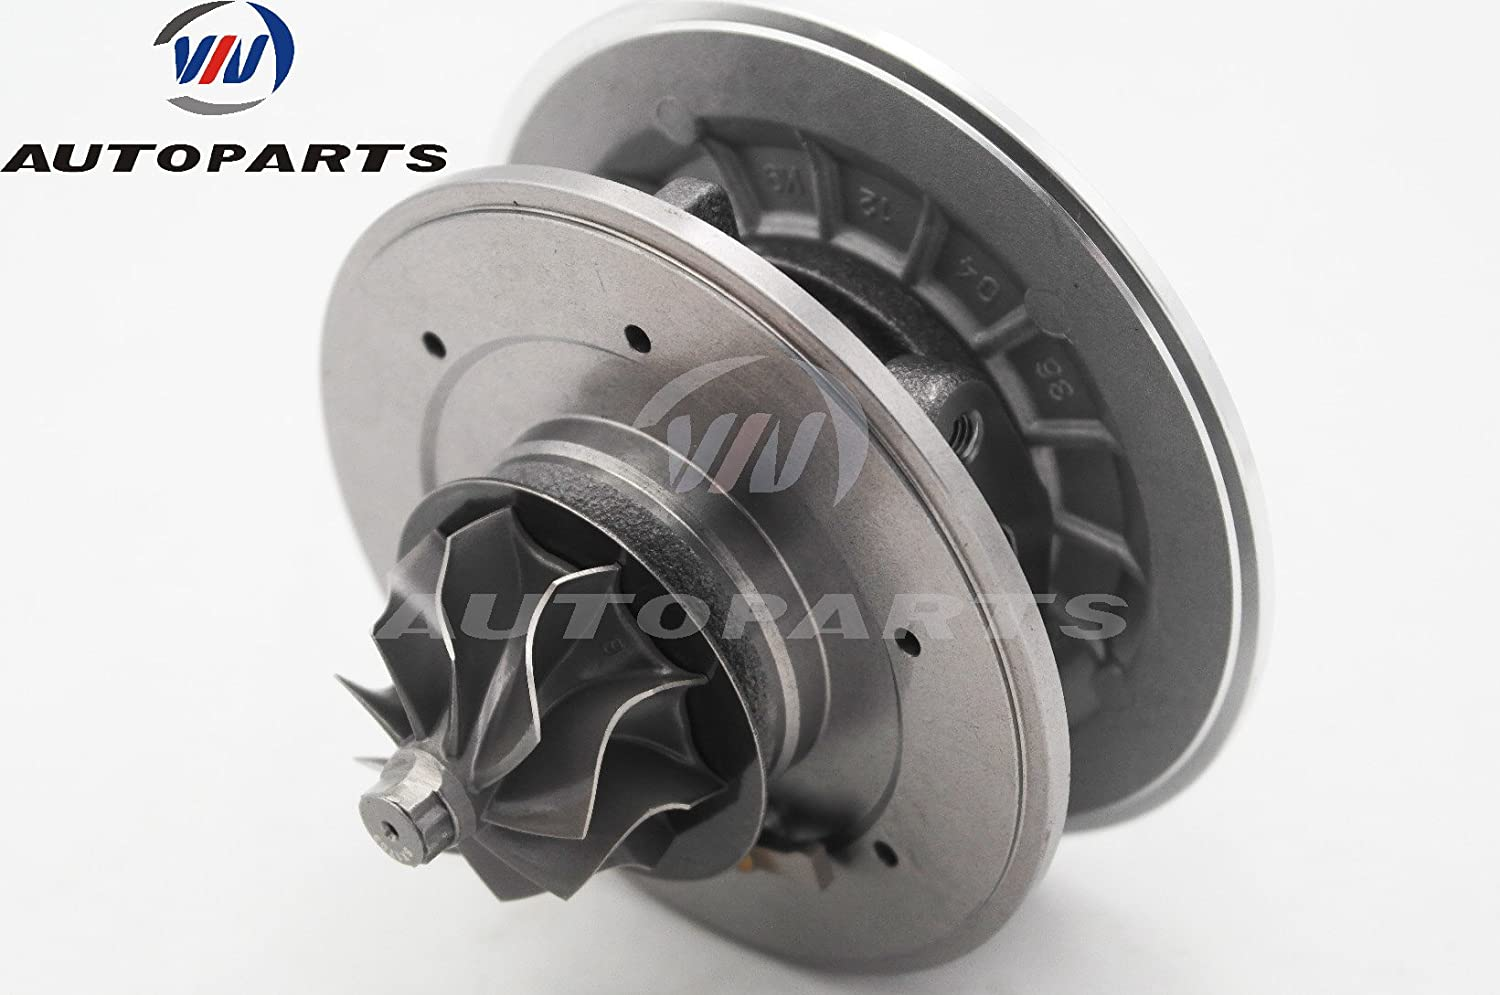 Amazon.com: CHRA 434766-0007 for Turbocharger 454135-0001 for Audi Skoda Volkswagen 2.5L V6 Diesel Engine: Automotive